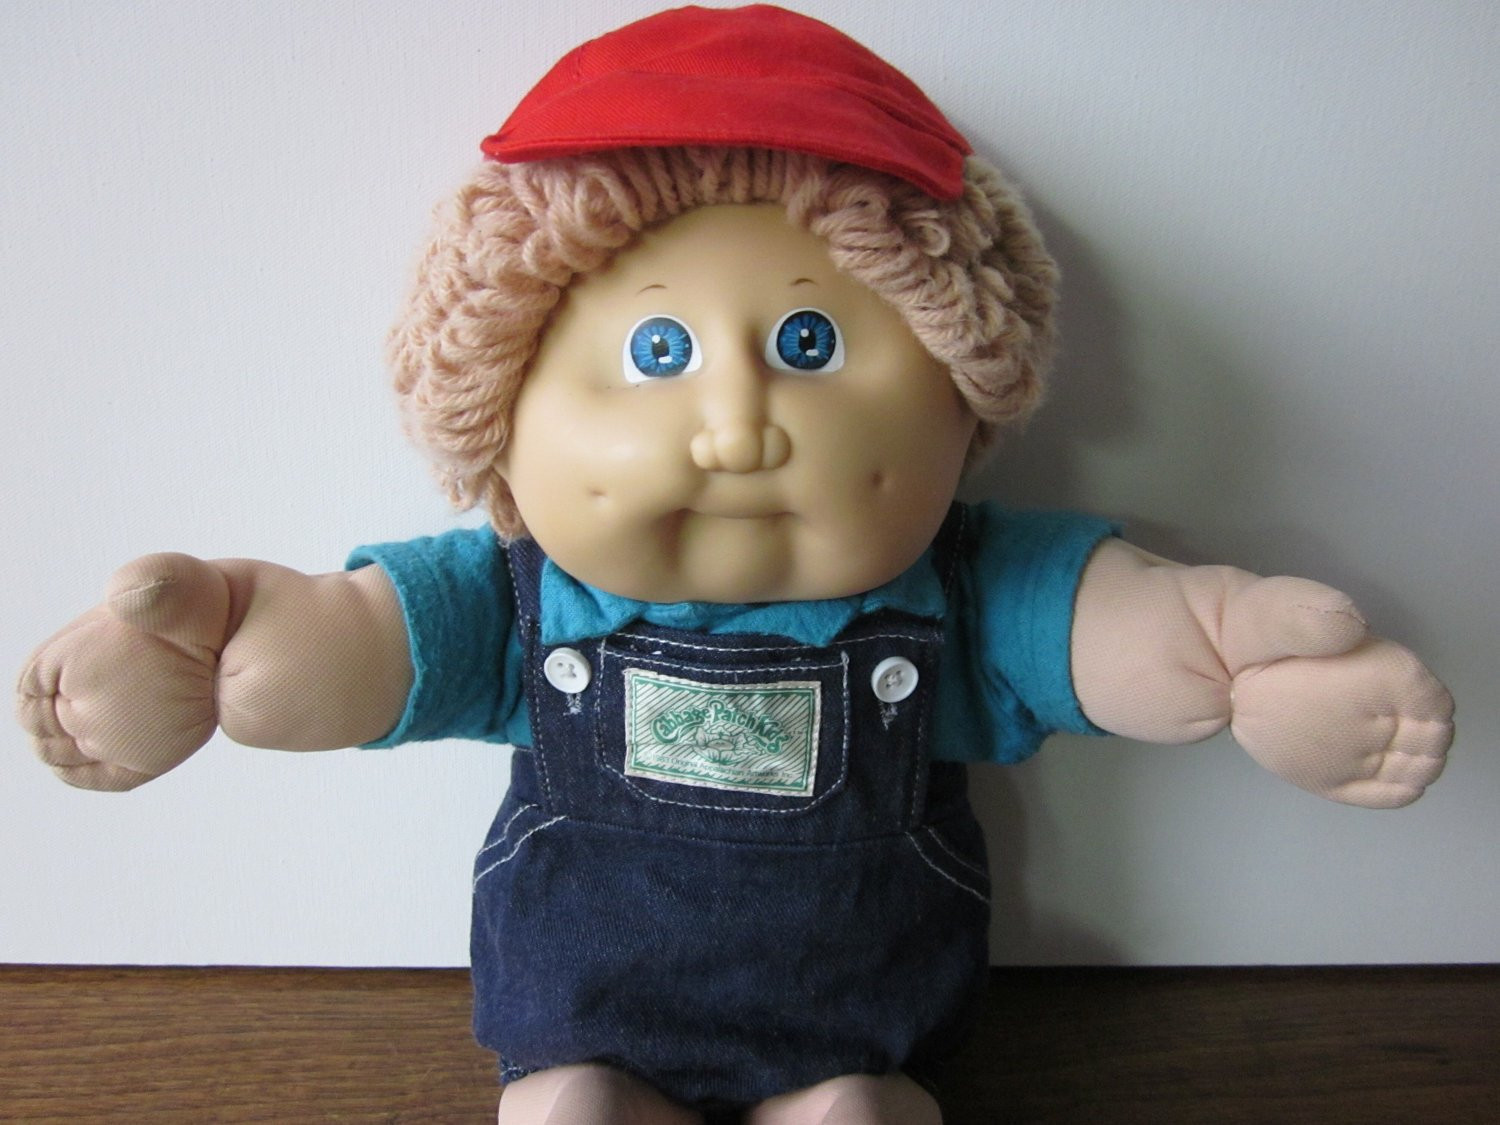 Boy Cabbage Patch Dolls Beautiful Download Free Red Haired Boy Cabbage Patch Doll software Of Attractive 41 Ideas Boy Cabbage Patch Dolls